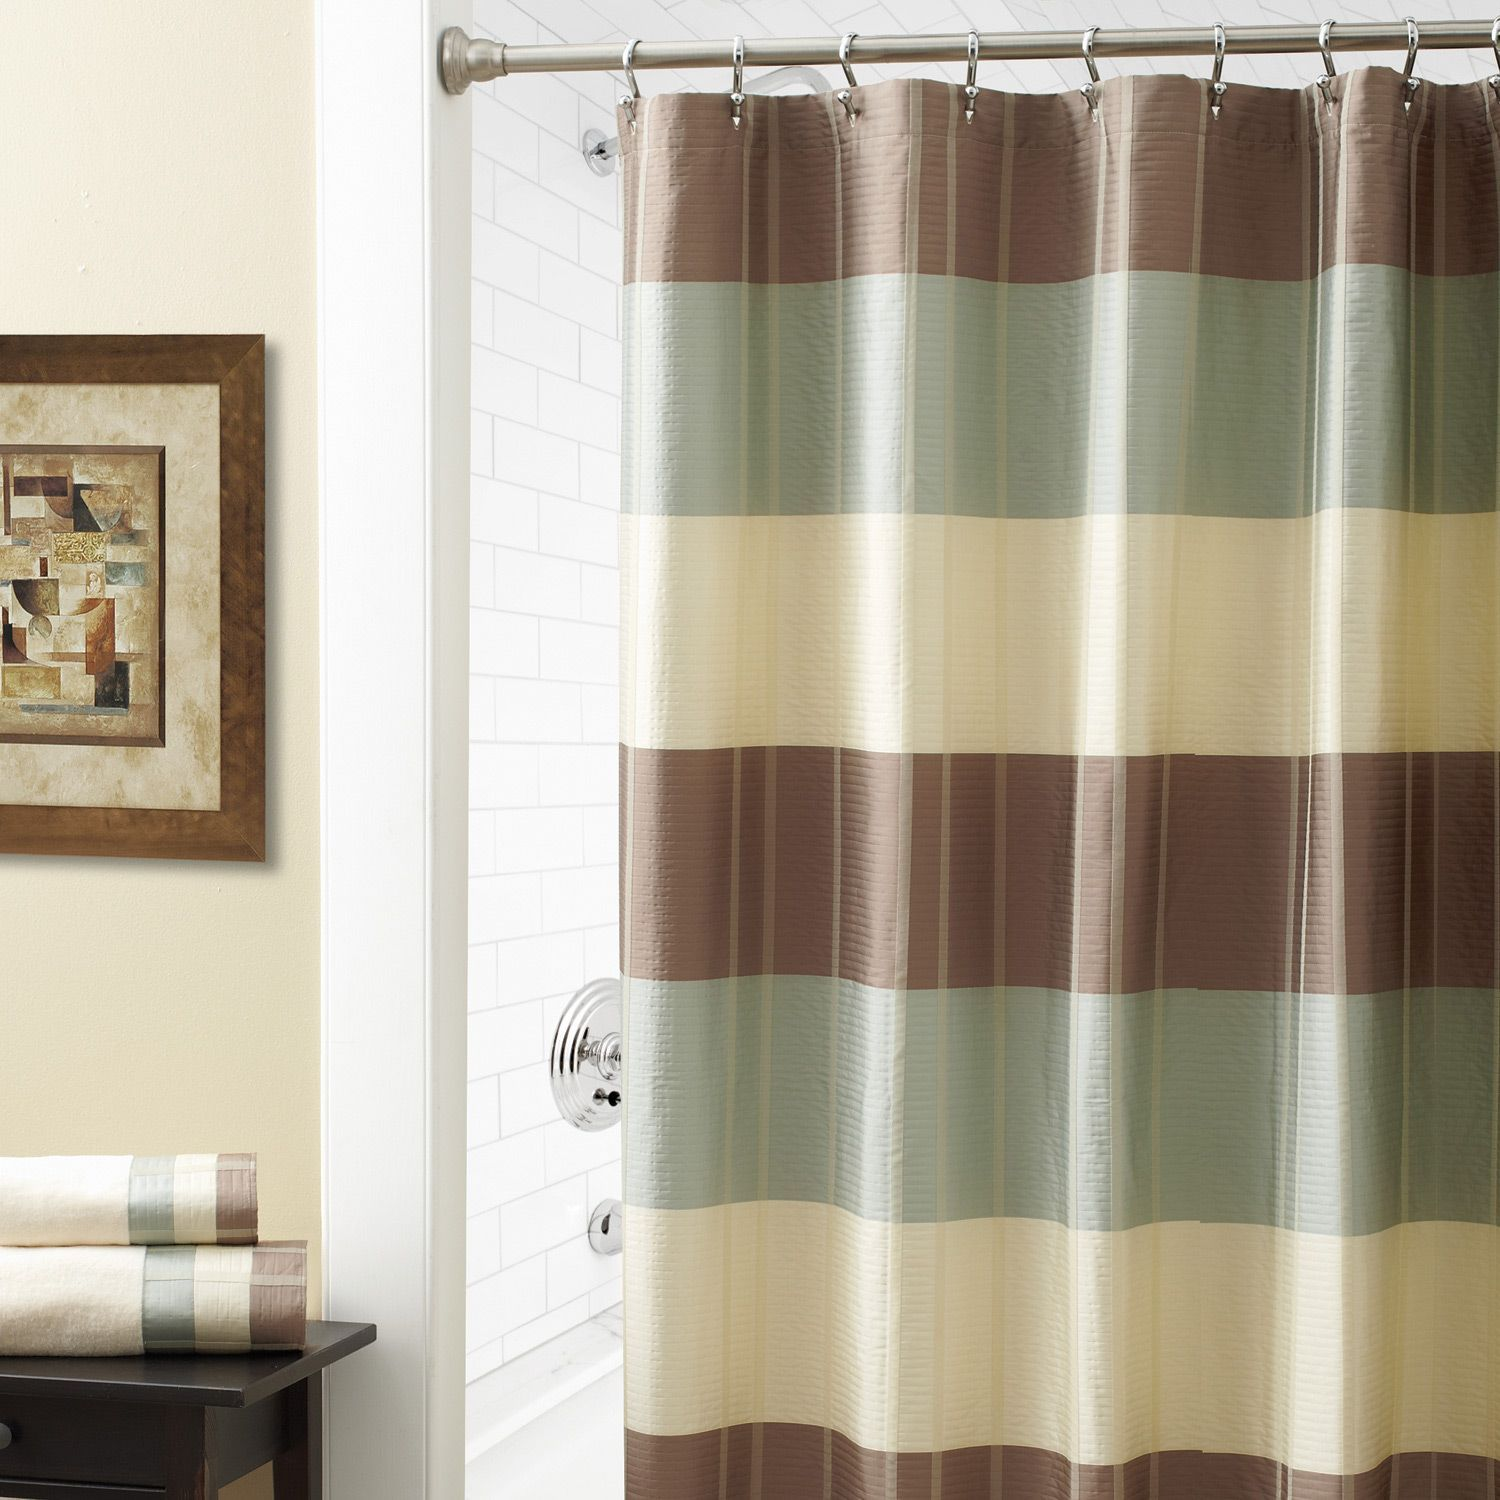 Croscill Fairfax Taupe Shower Curtain Shower Curtains | home ...